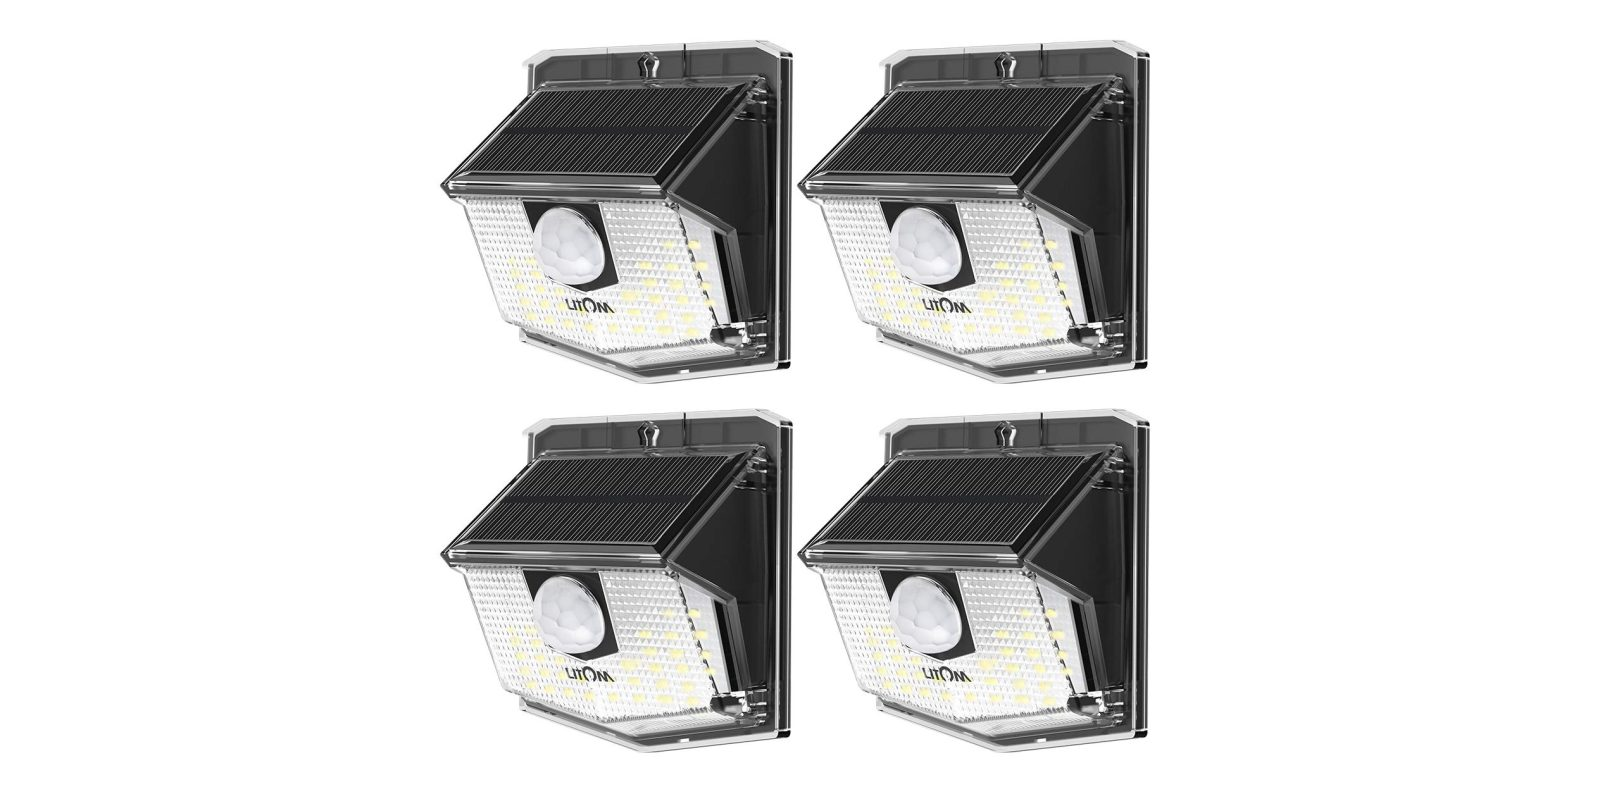 Add four solar outdoor lights to your home for $16, more in today's Green Deals